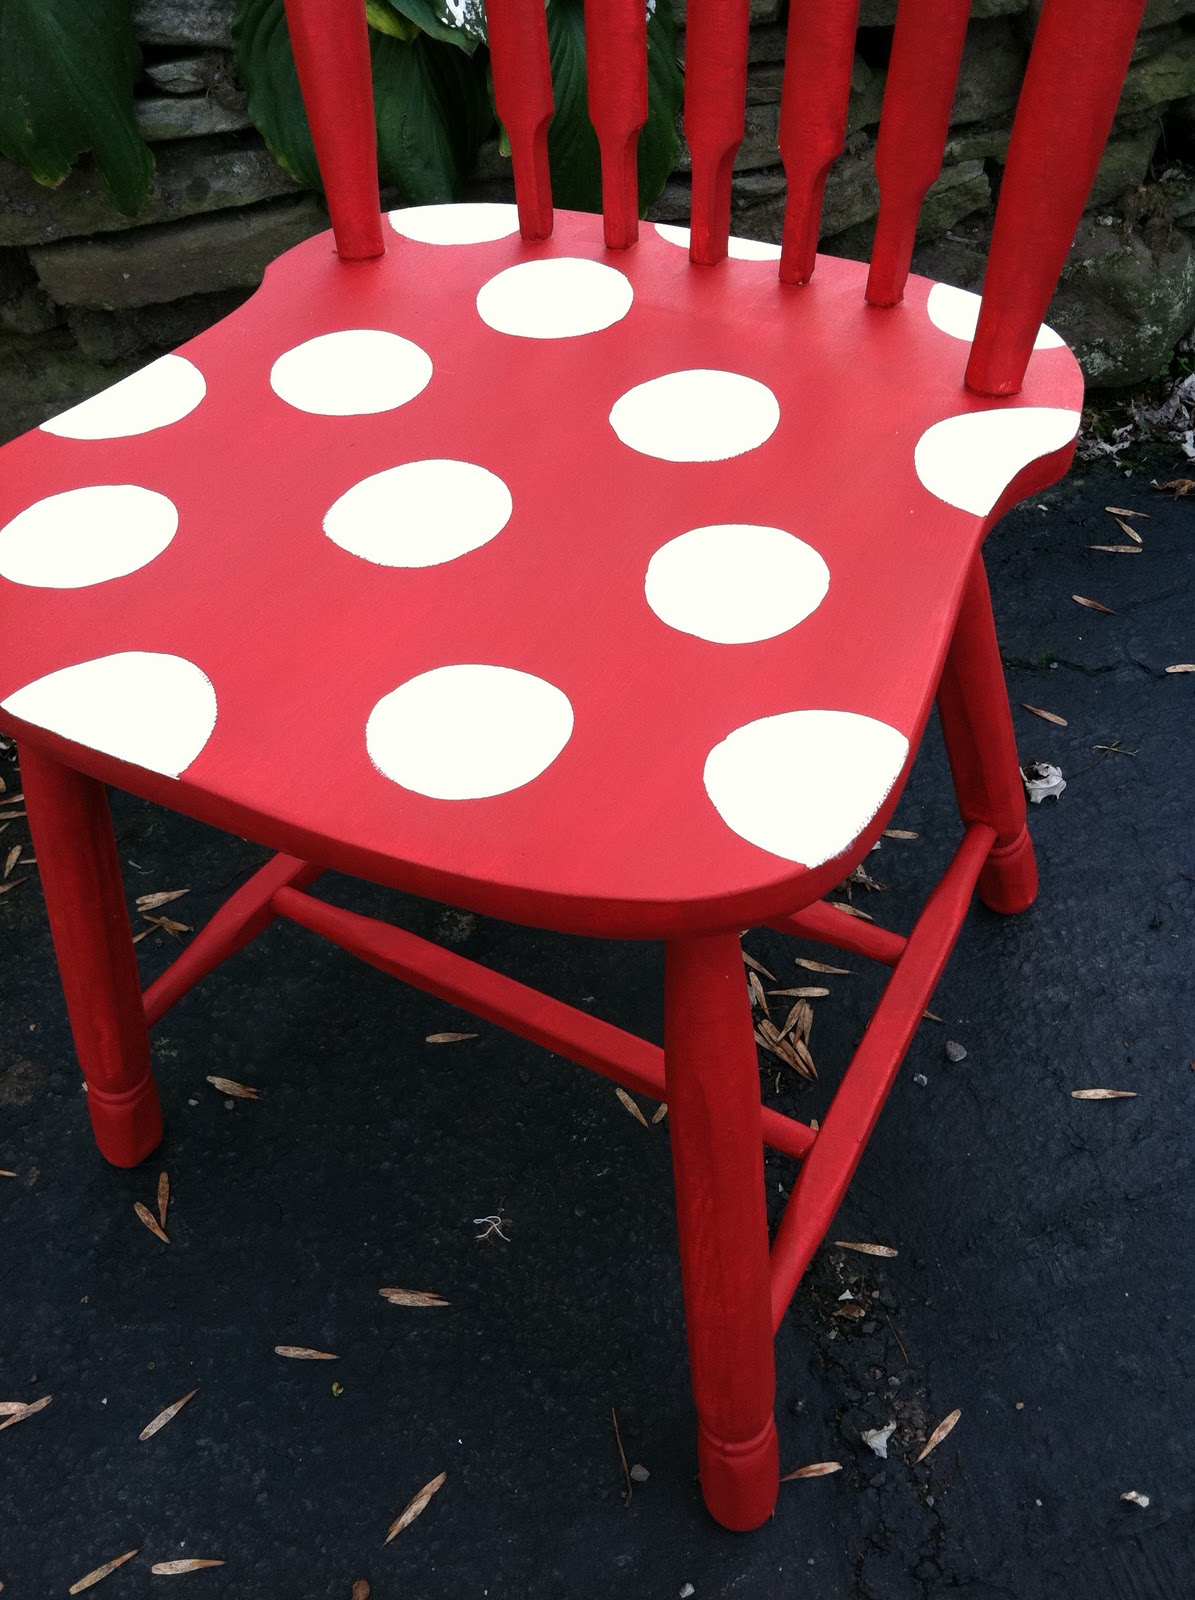 The Blessed Nest: Hand Painted Polka Dot Chair For Sale